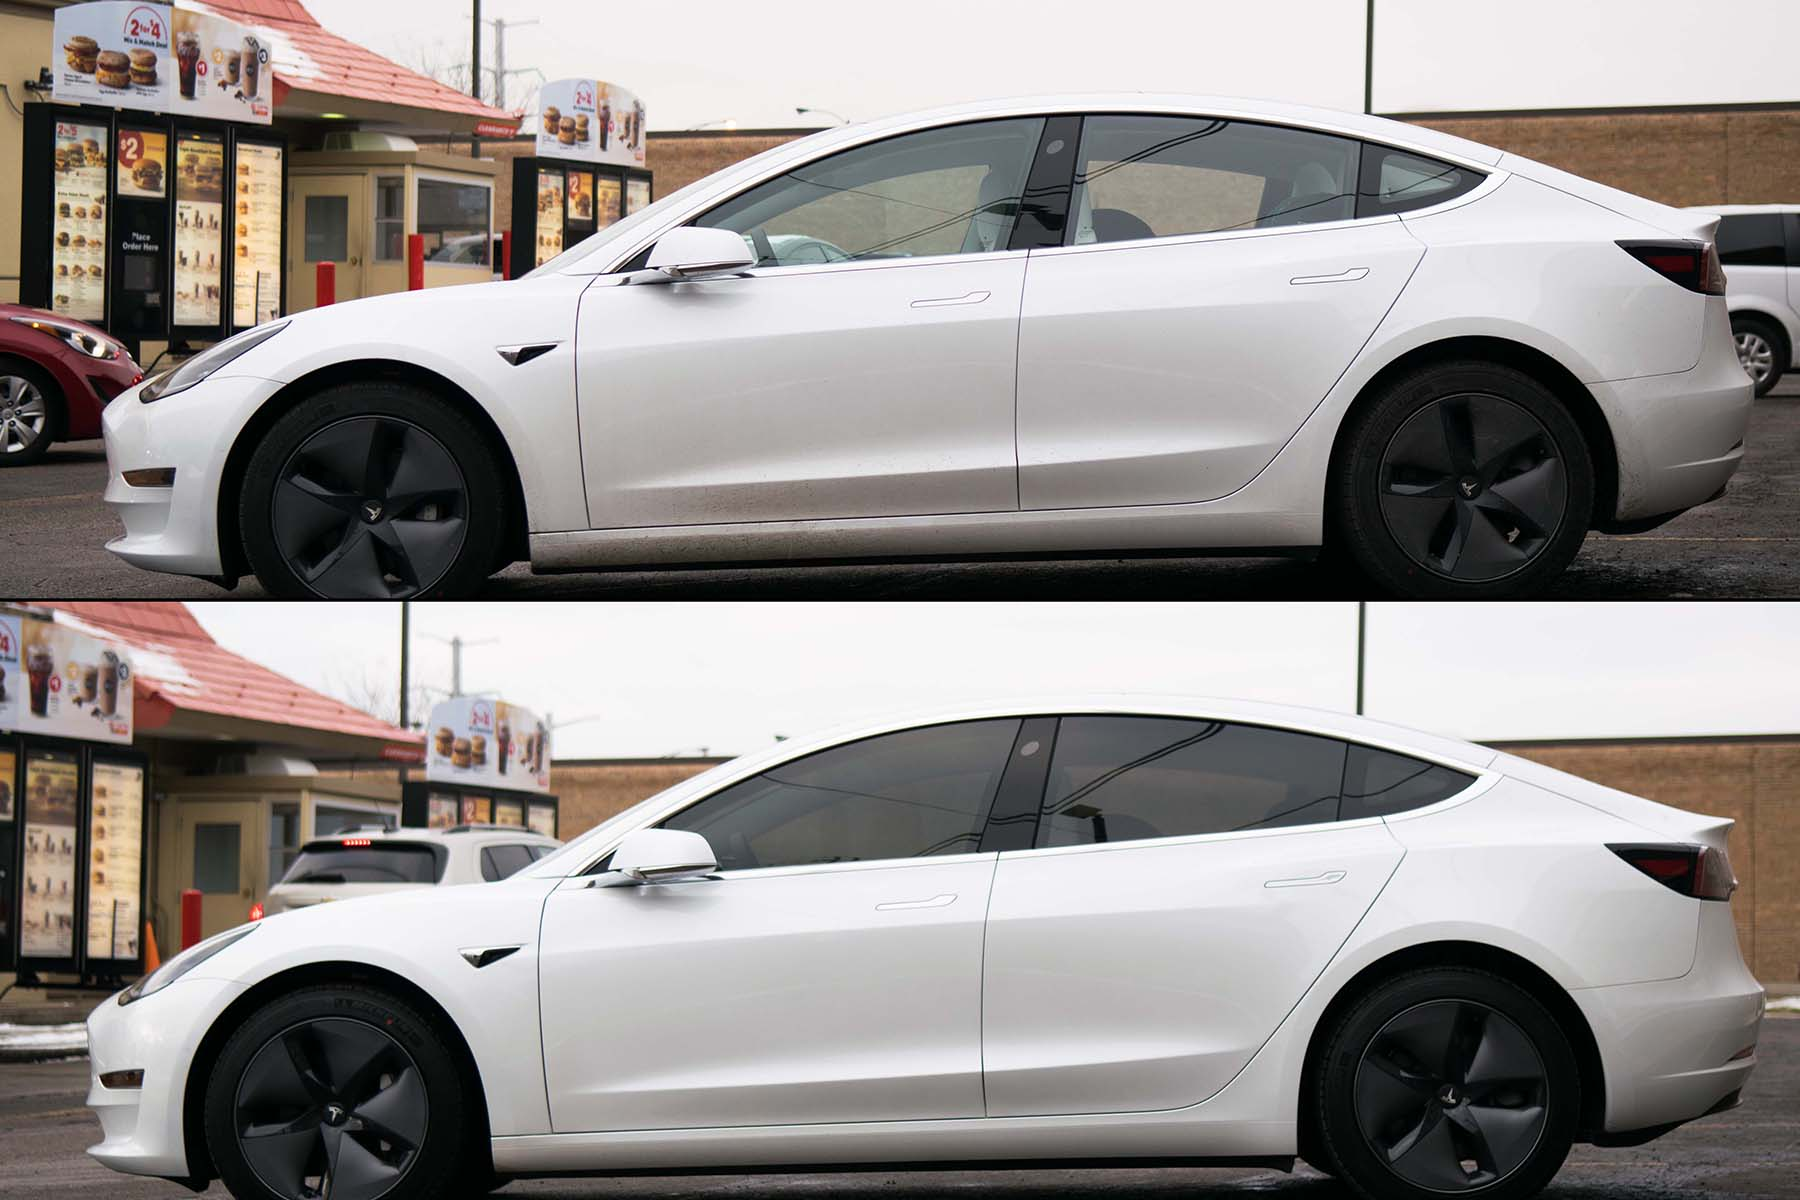 before-after-side-low.jpg